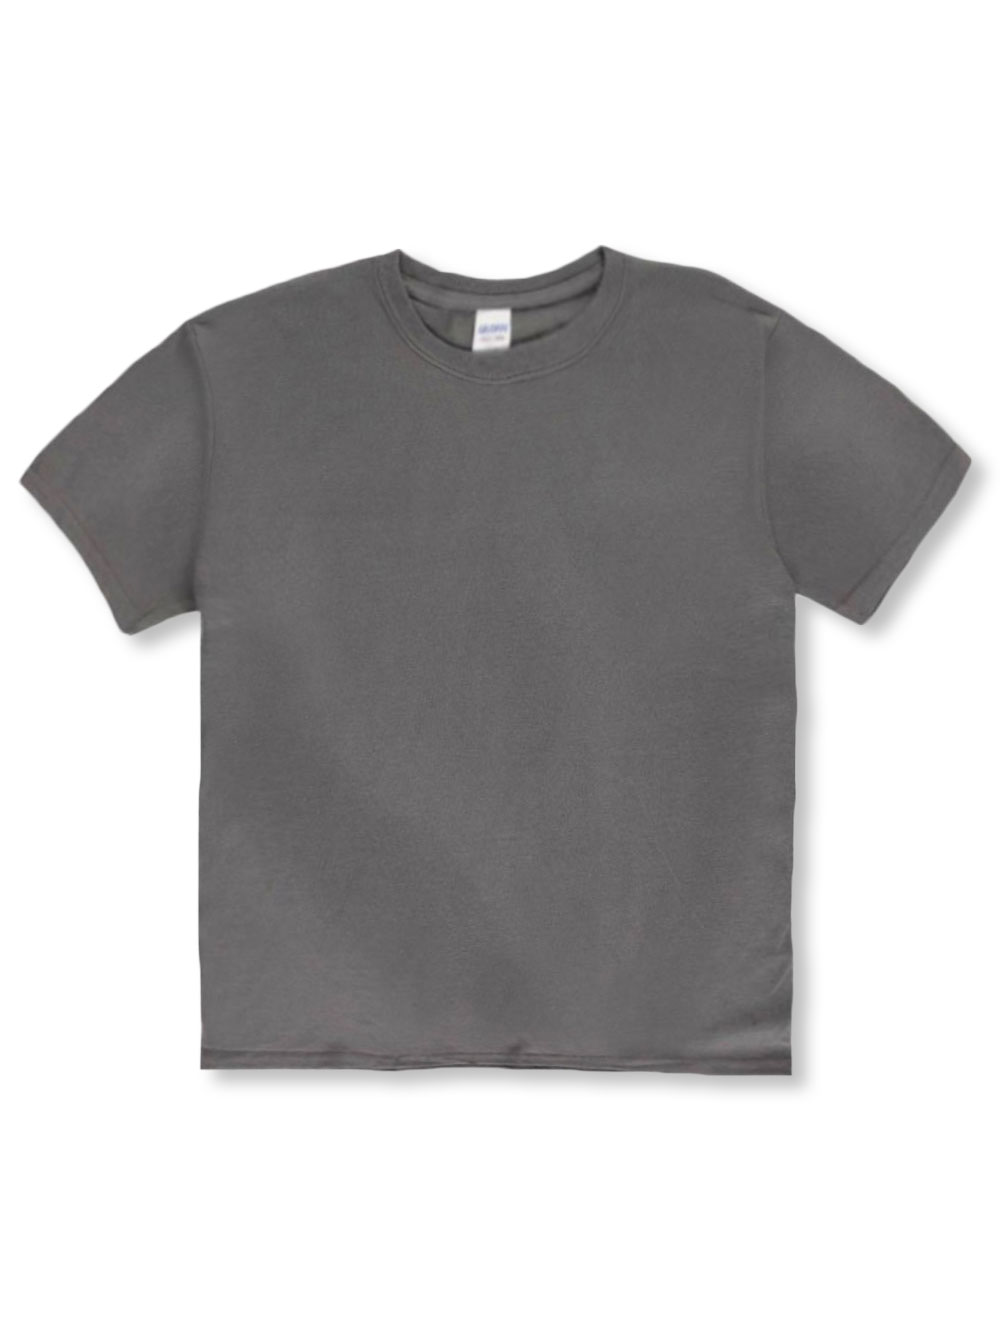 gildan basic t shirt youth sizes xs xl ebay